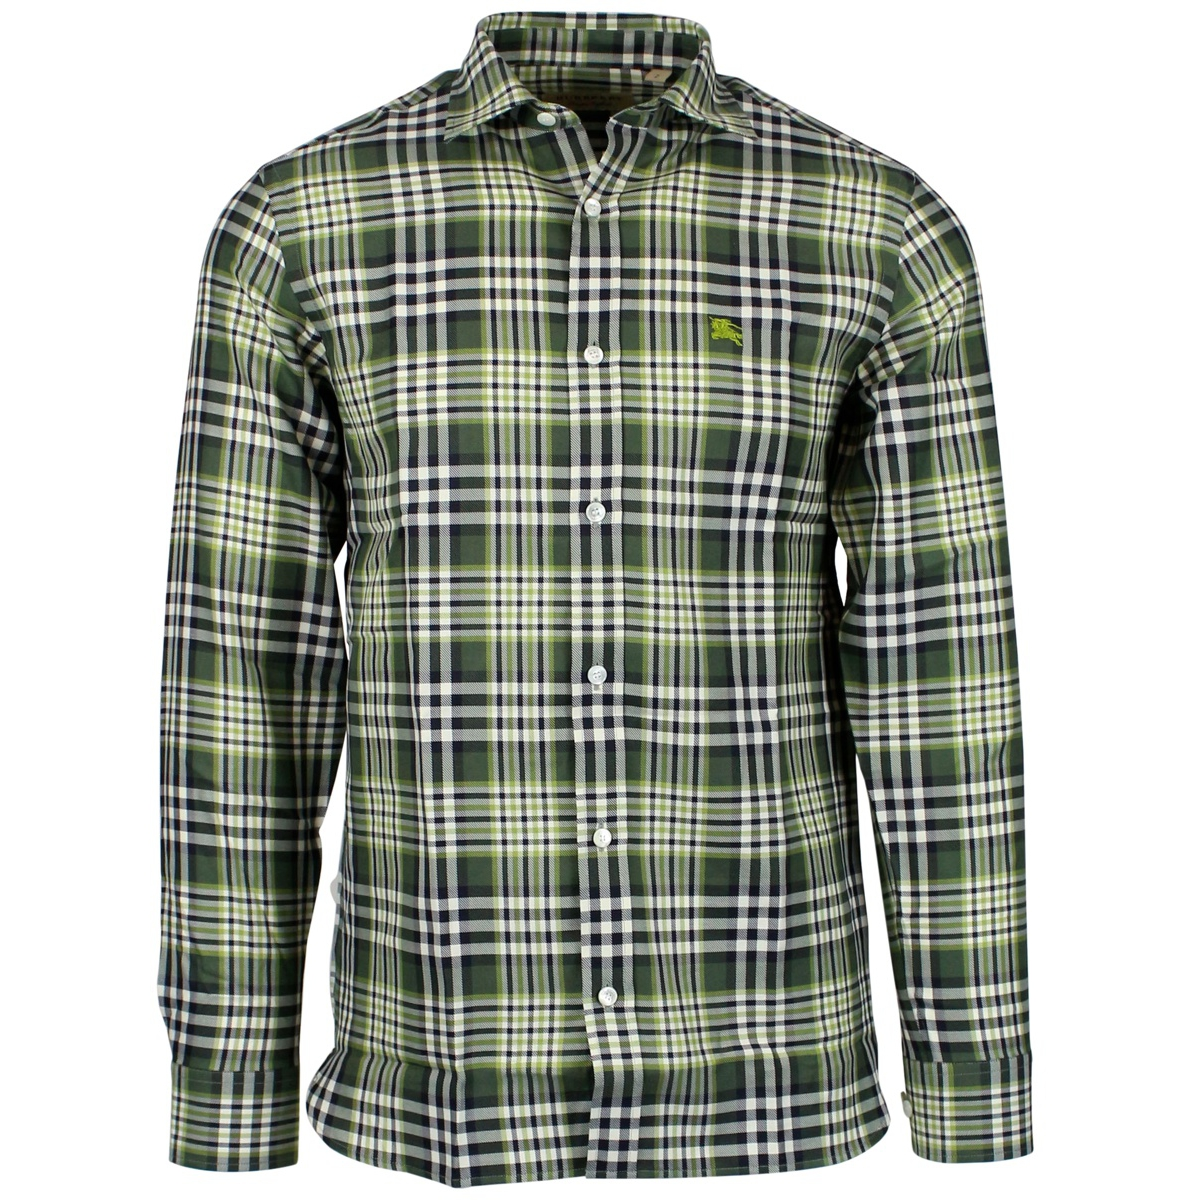 Edward shirt with logo embroidery Green Burberry